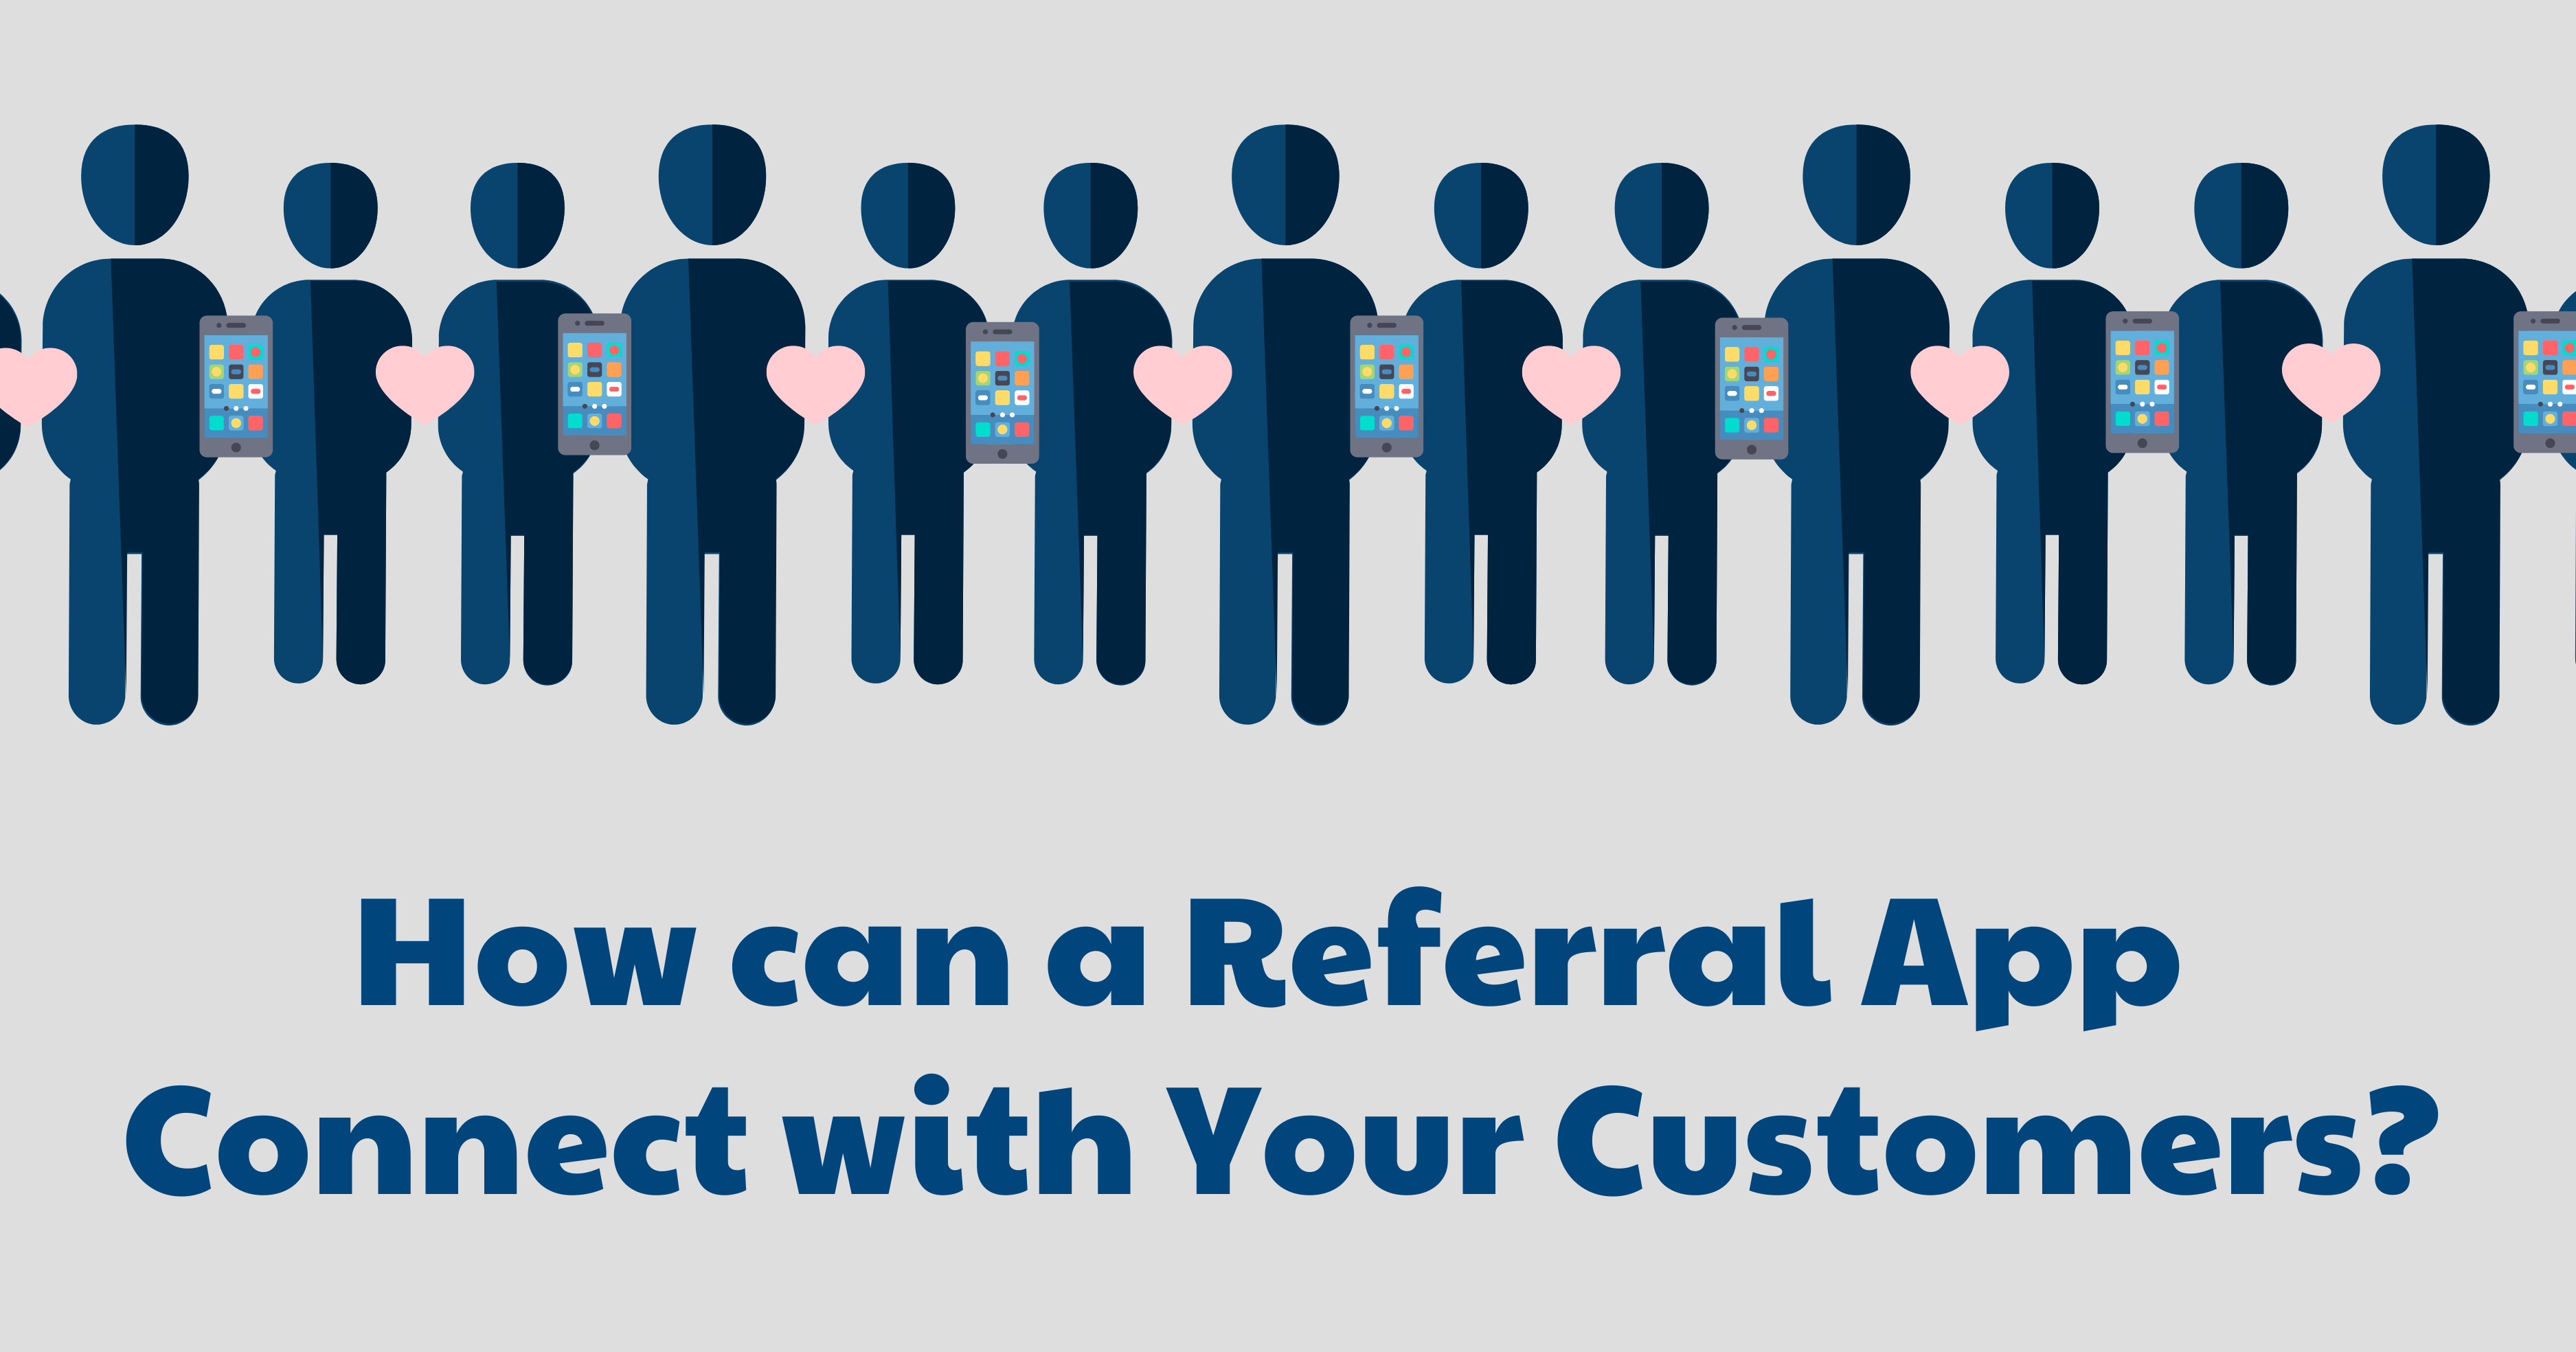 Long_How can a Referral App Connect with Your Customers?